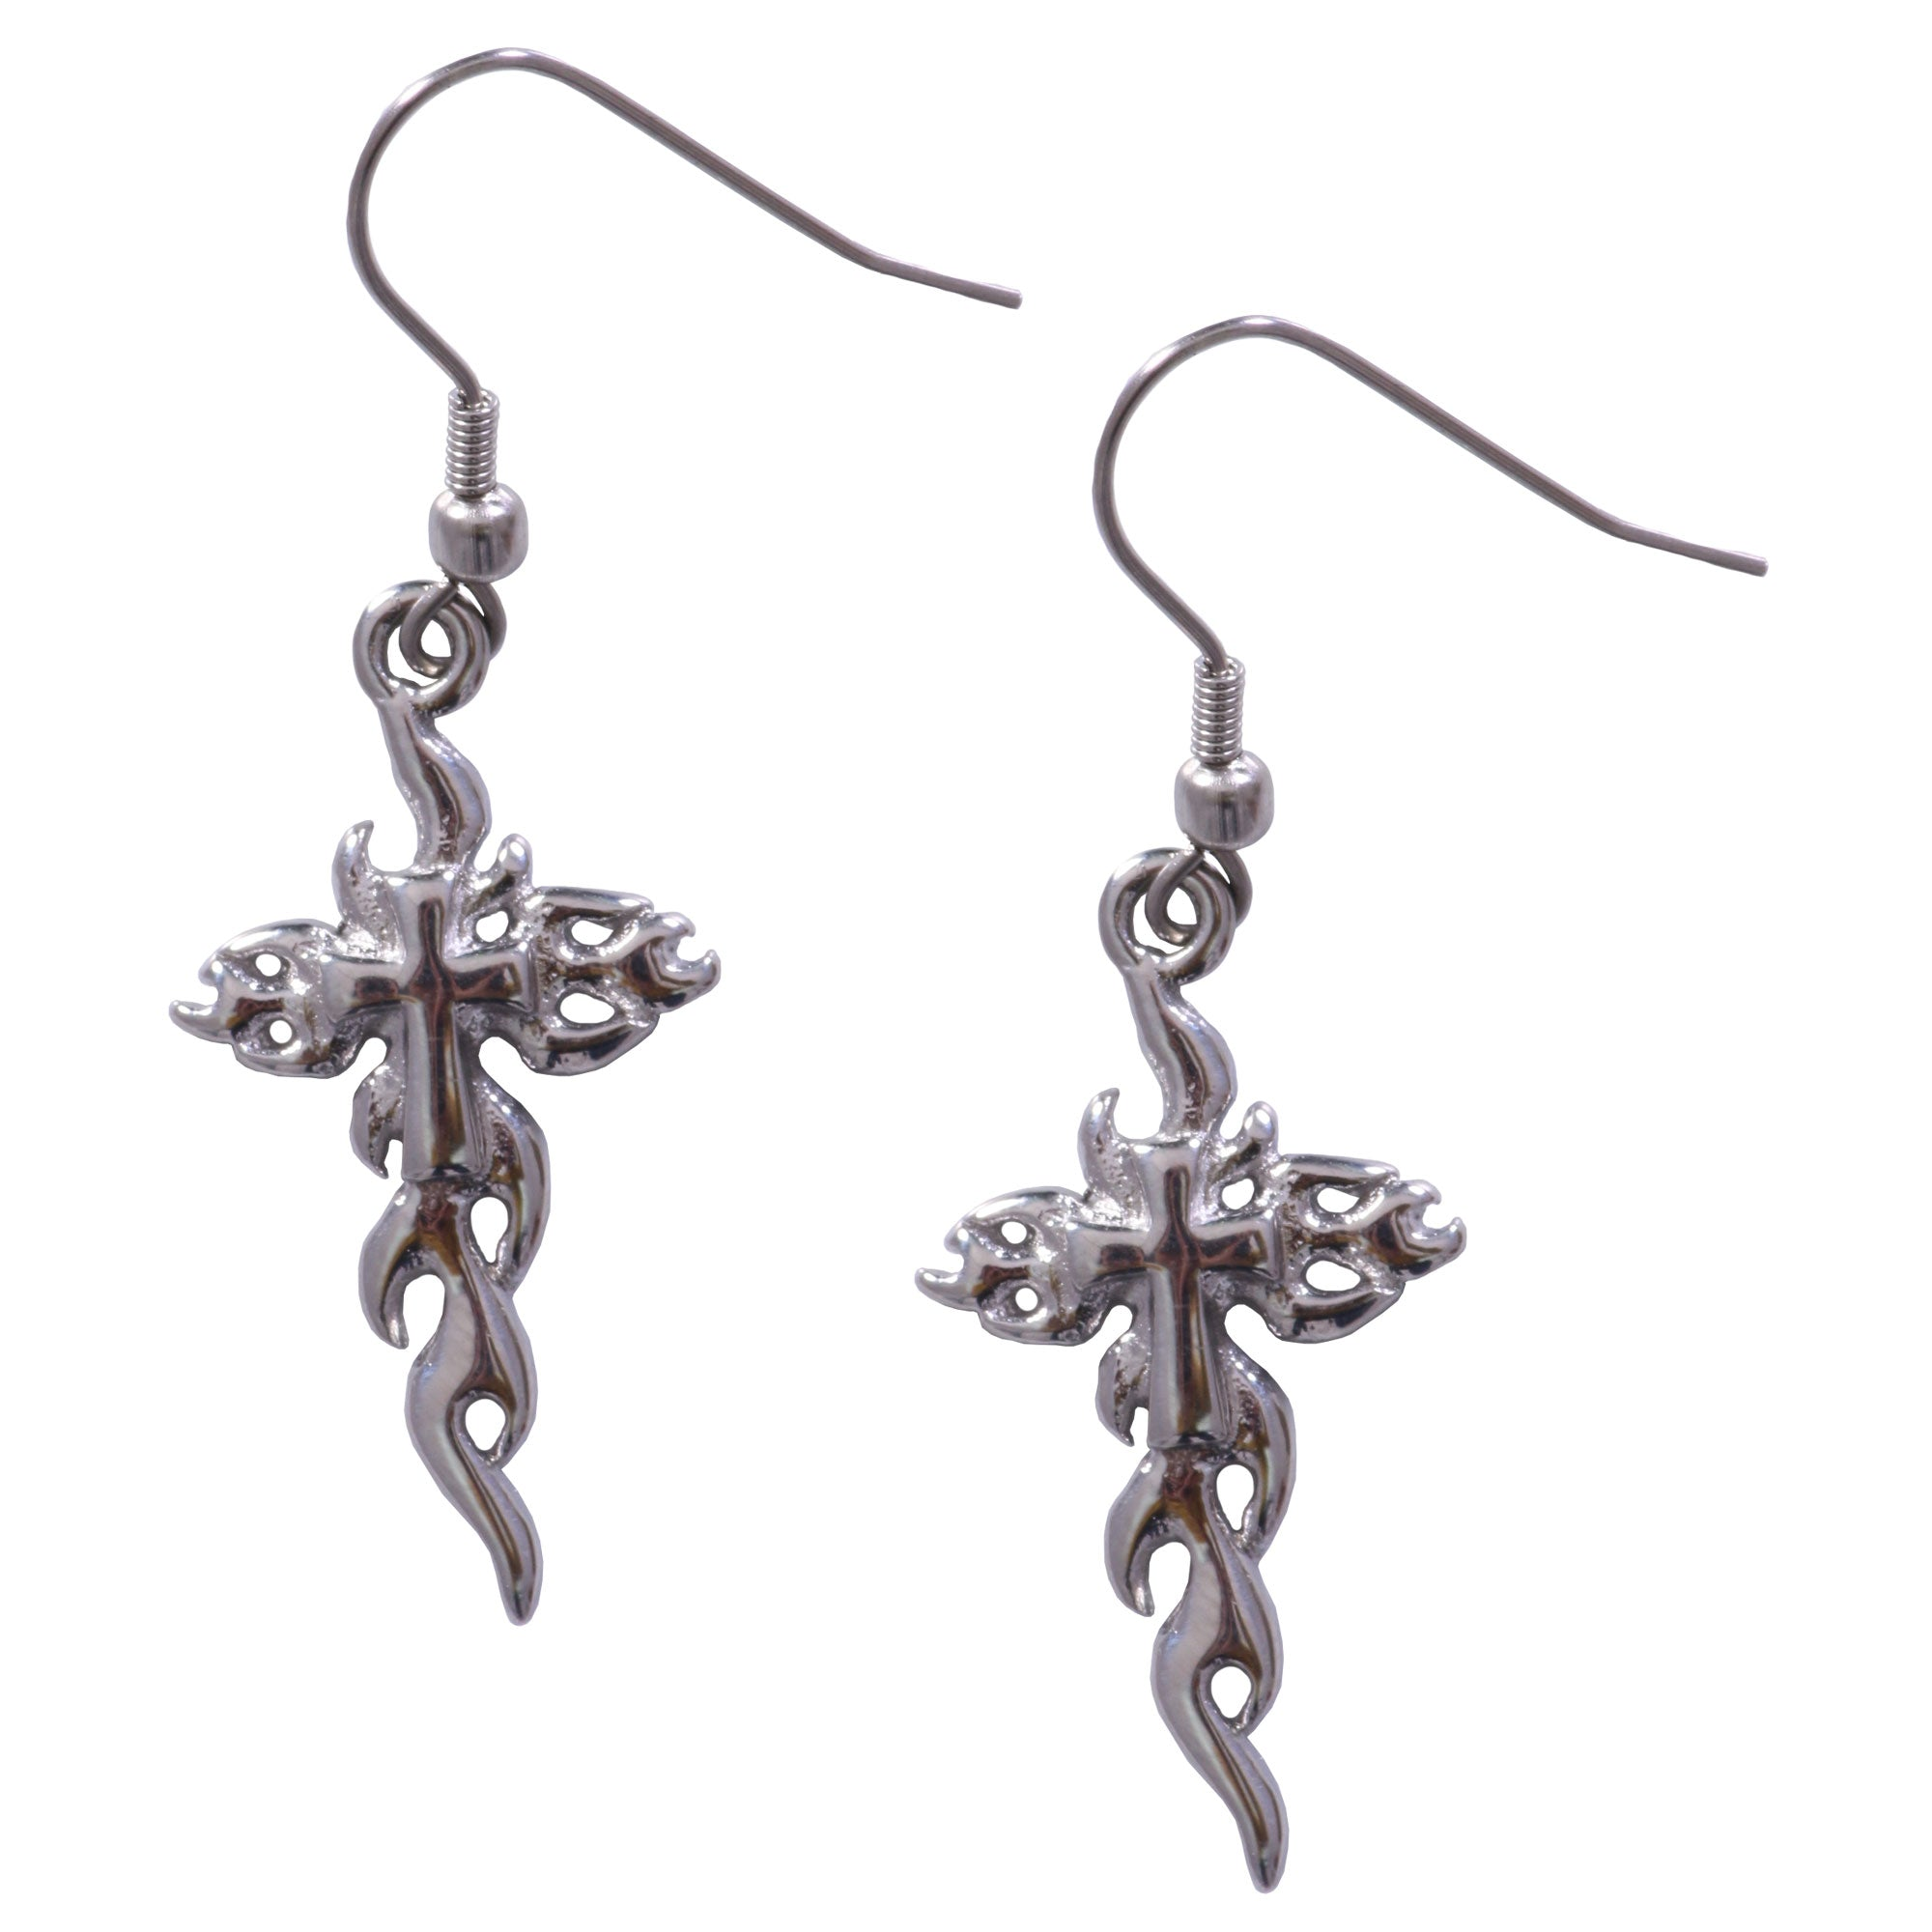 Hot Leathers Cross Flames Earrings